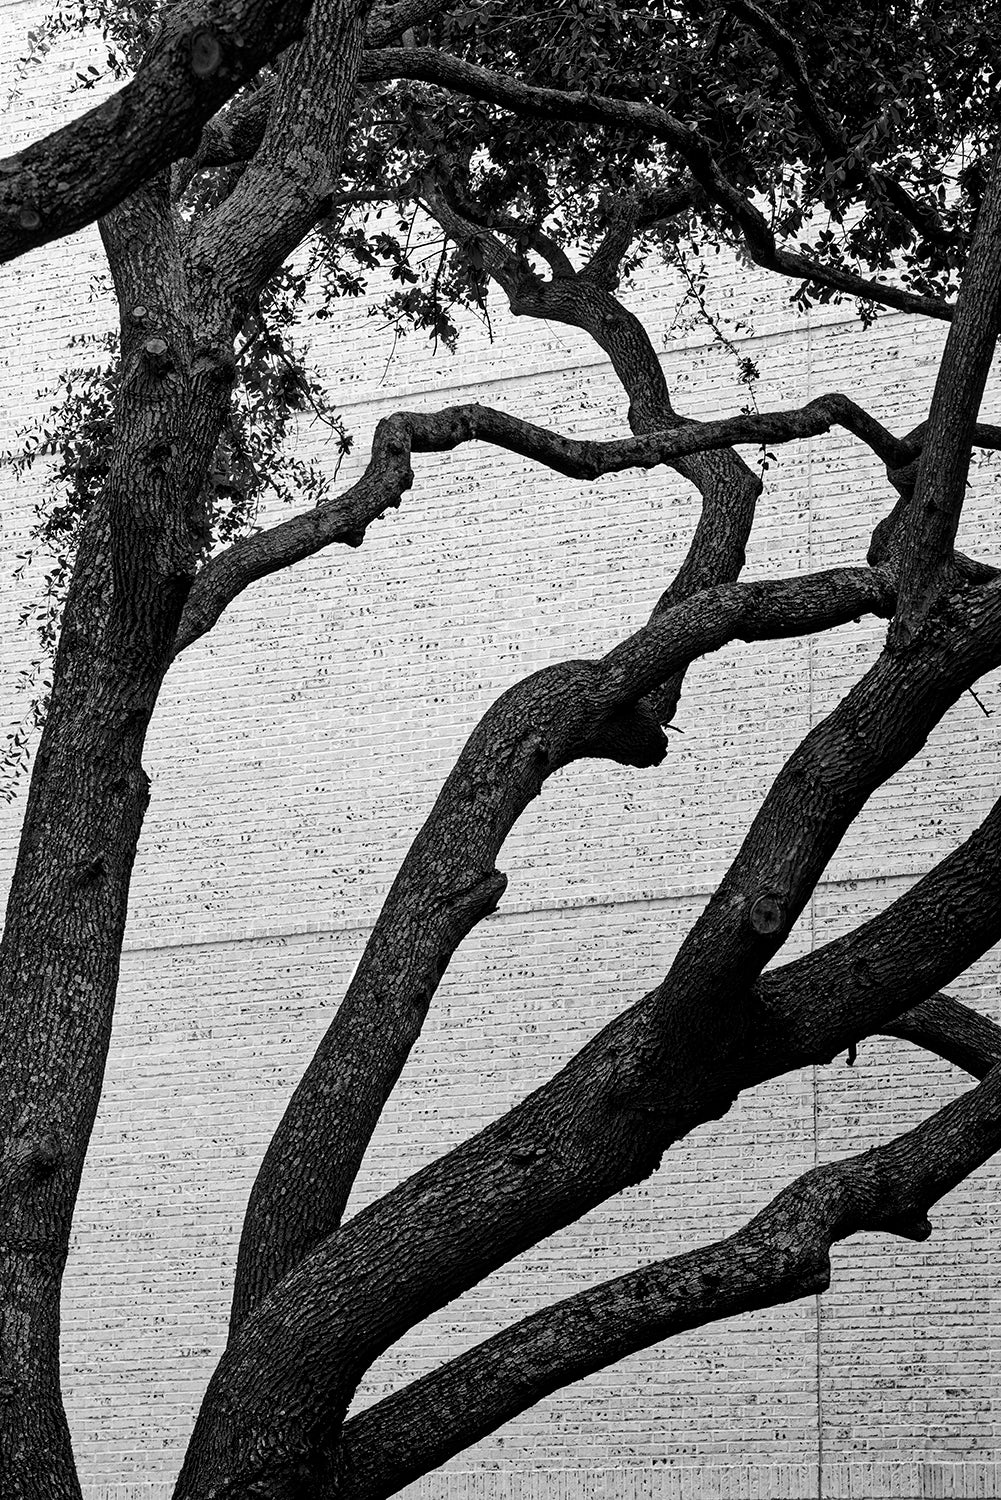 Charleston Urban Oaks - Black and White Photograph by Keith Dotson. Buy a fine art print.